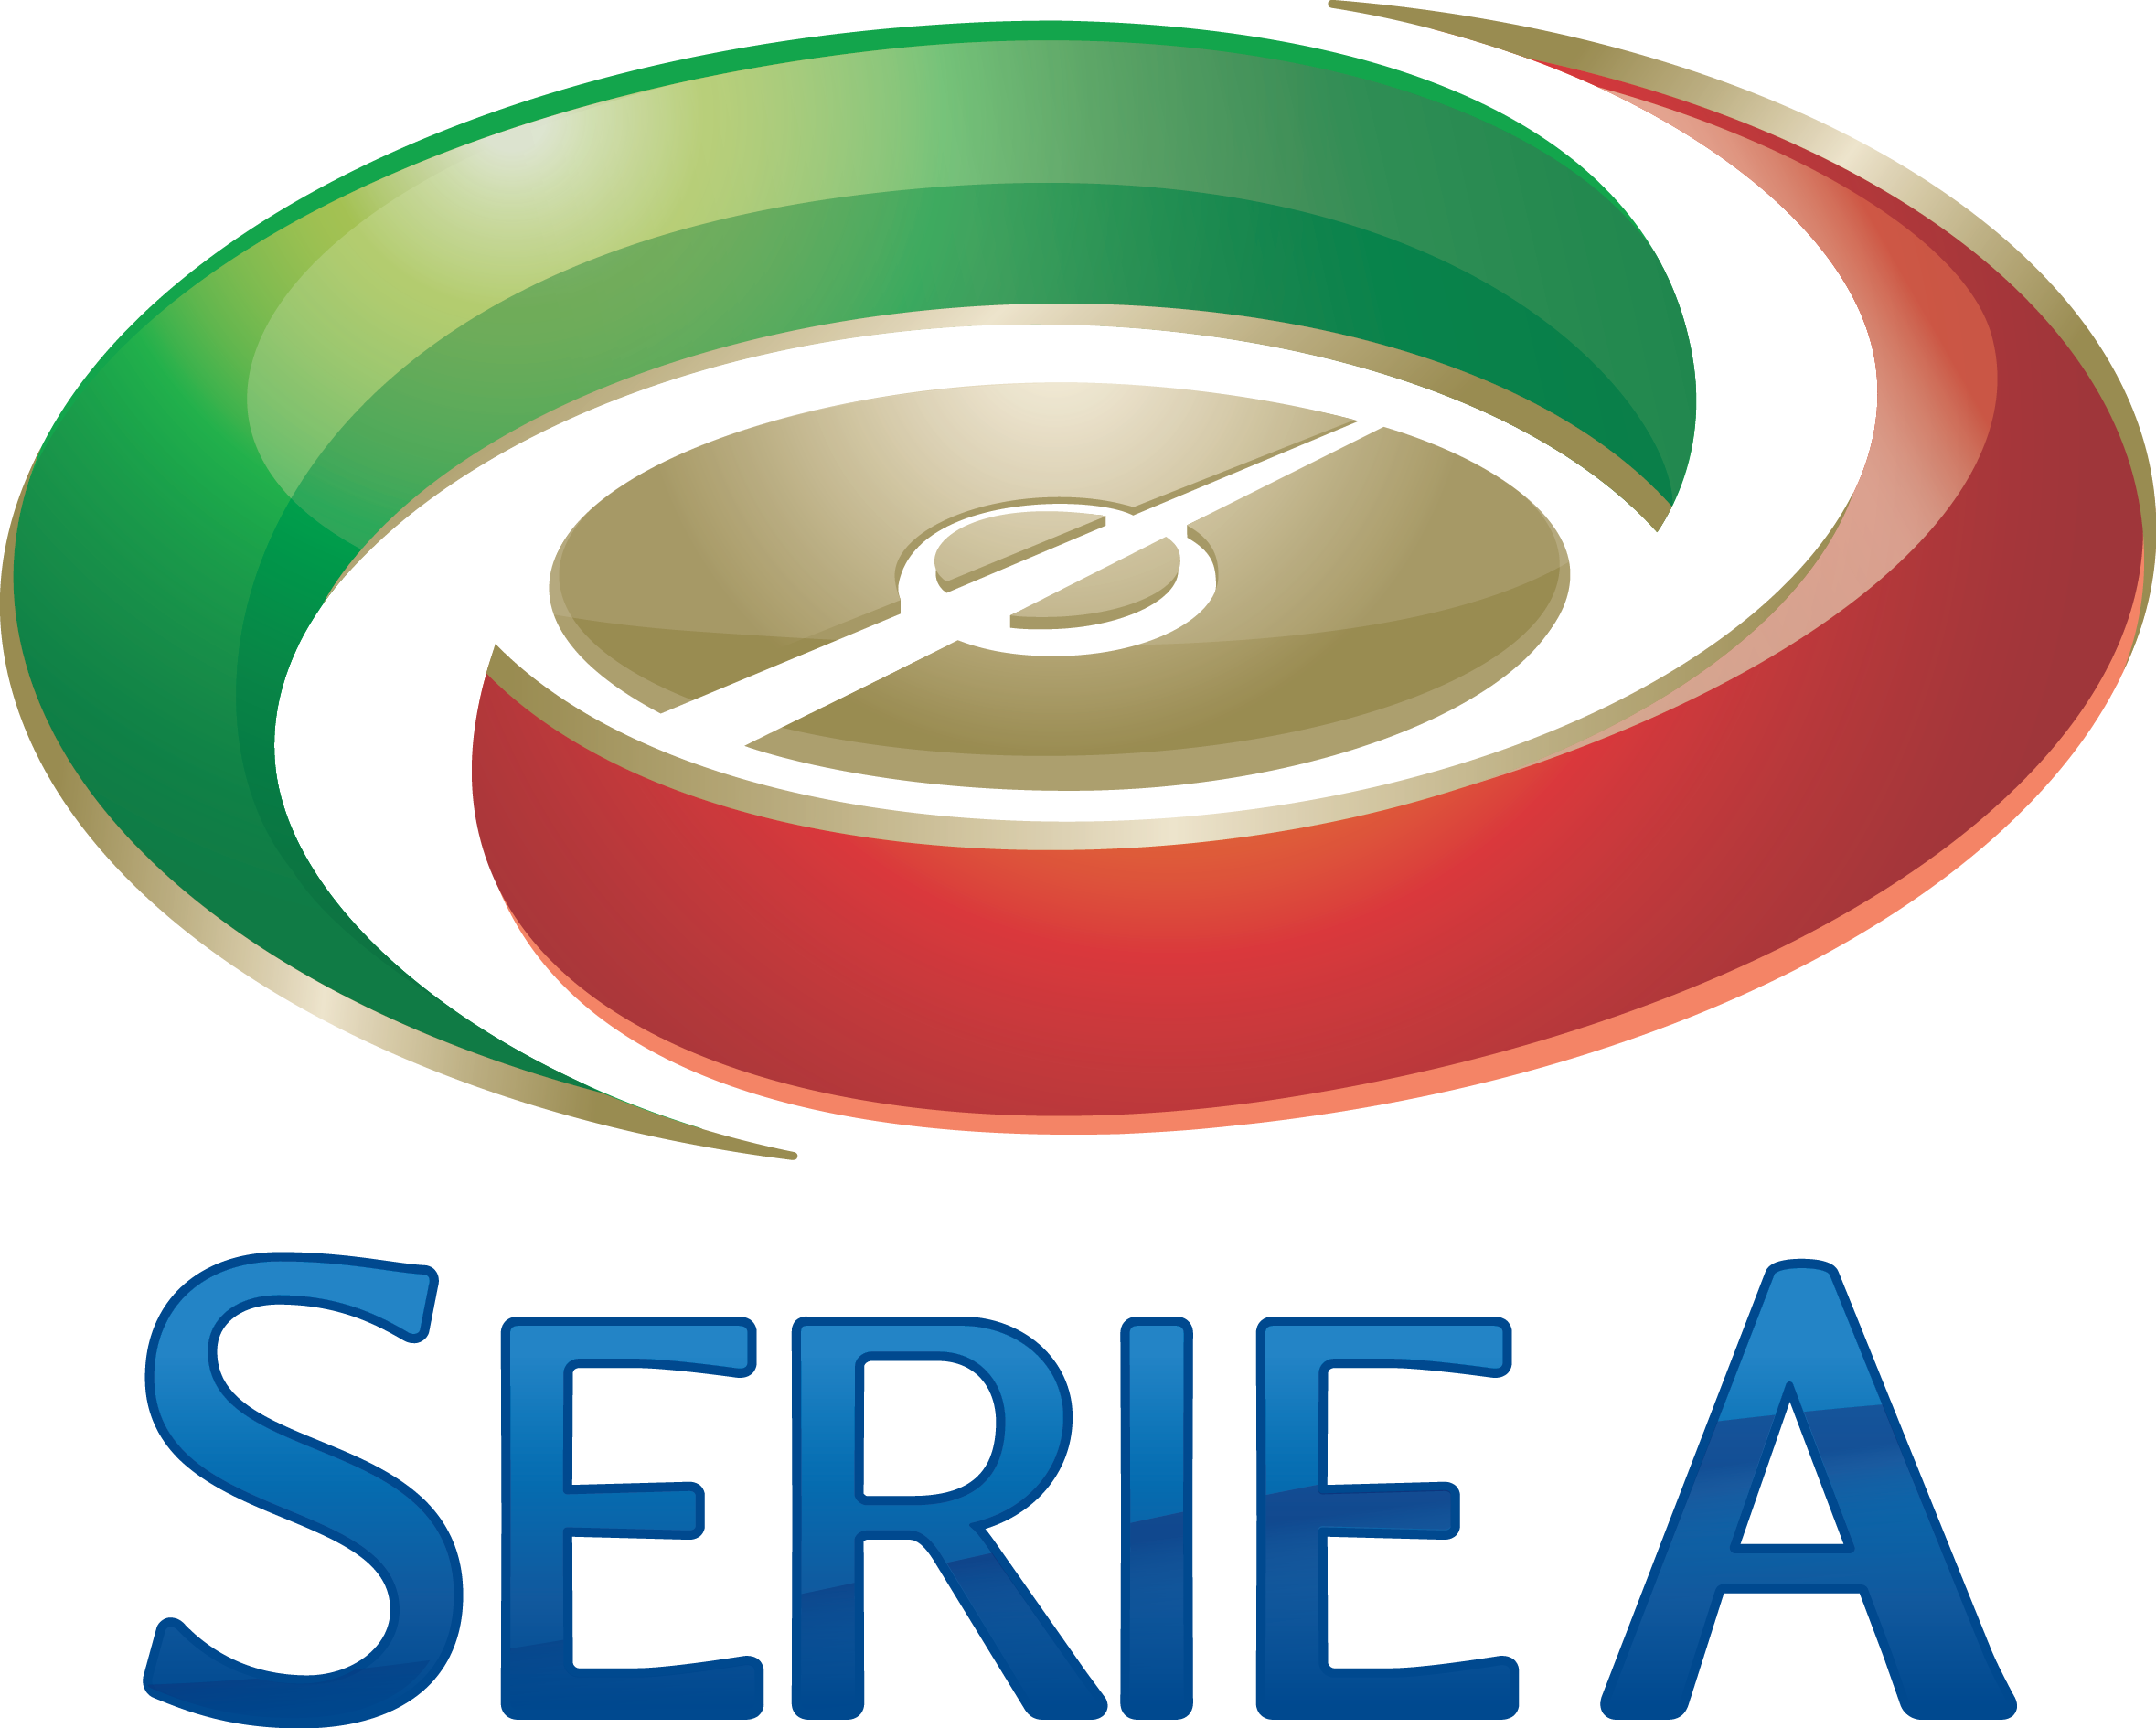 Chievo vs Inter Milan 0-1 All goals and highlights 20/09/2015